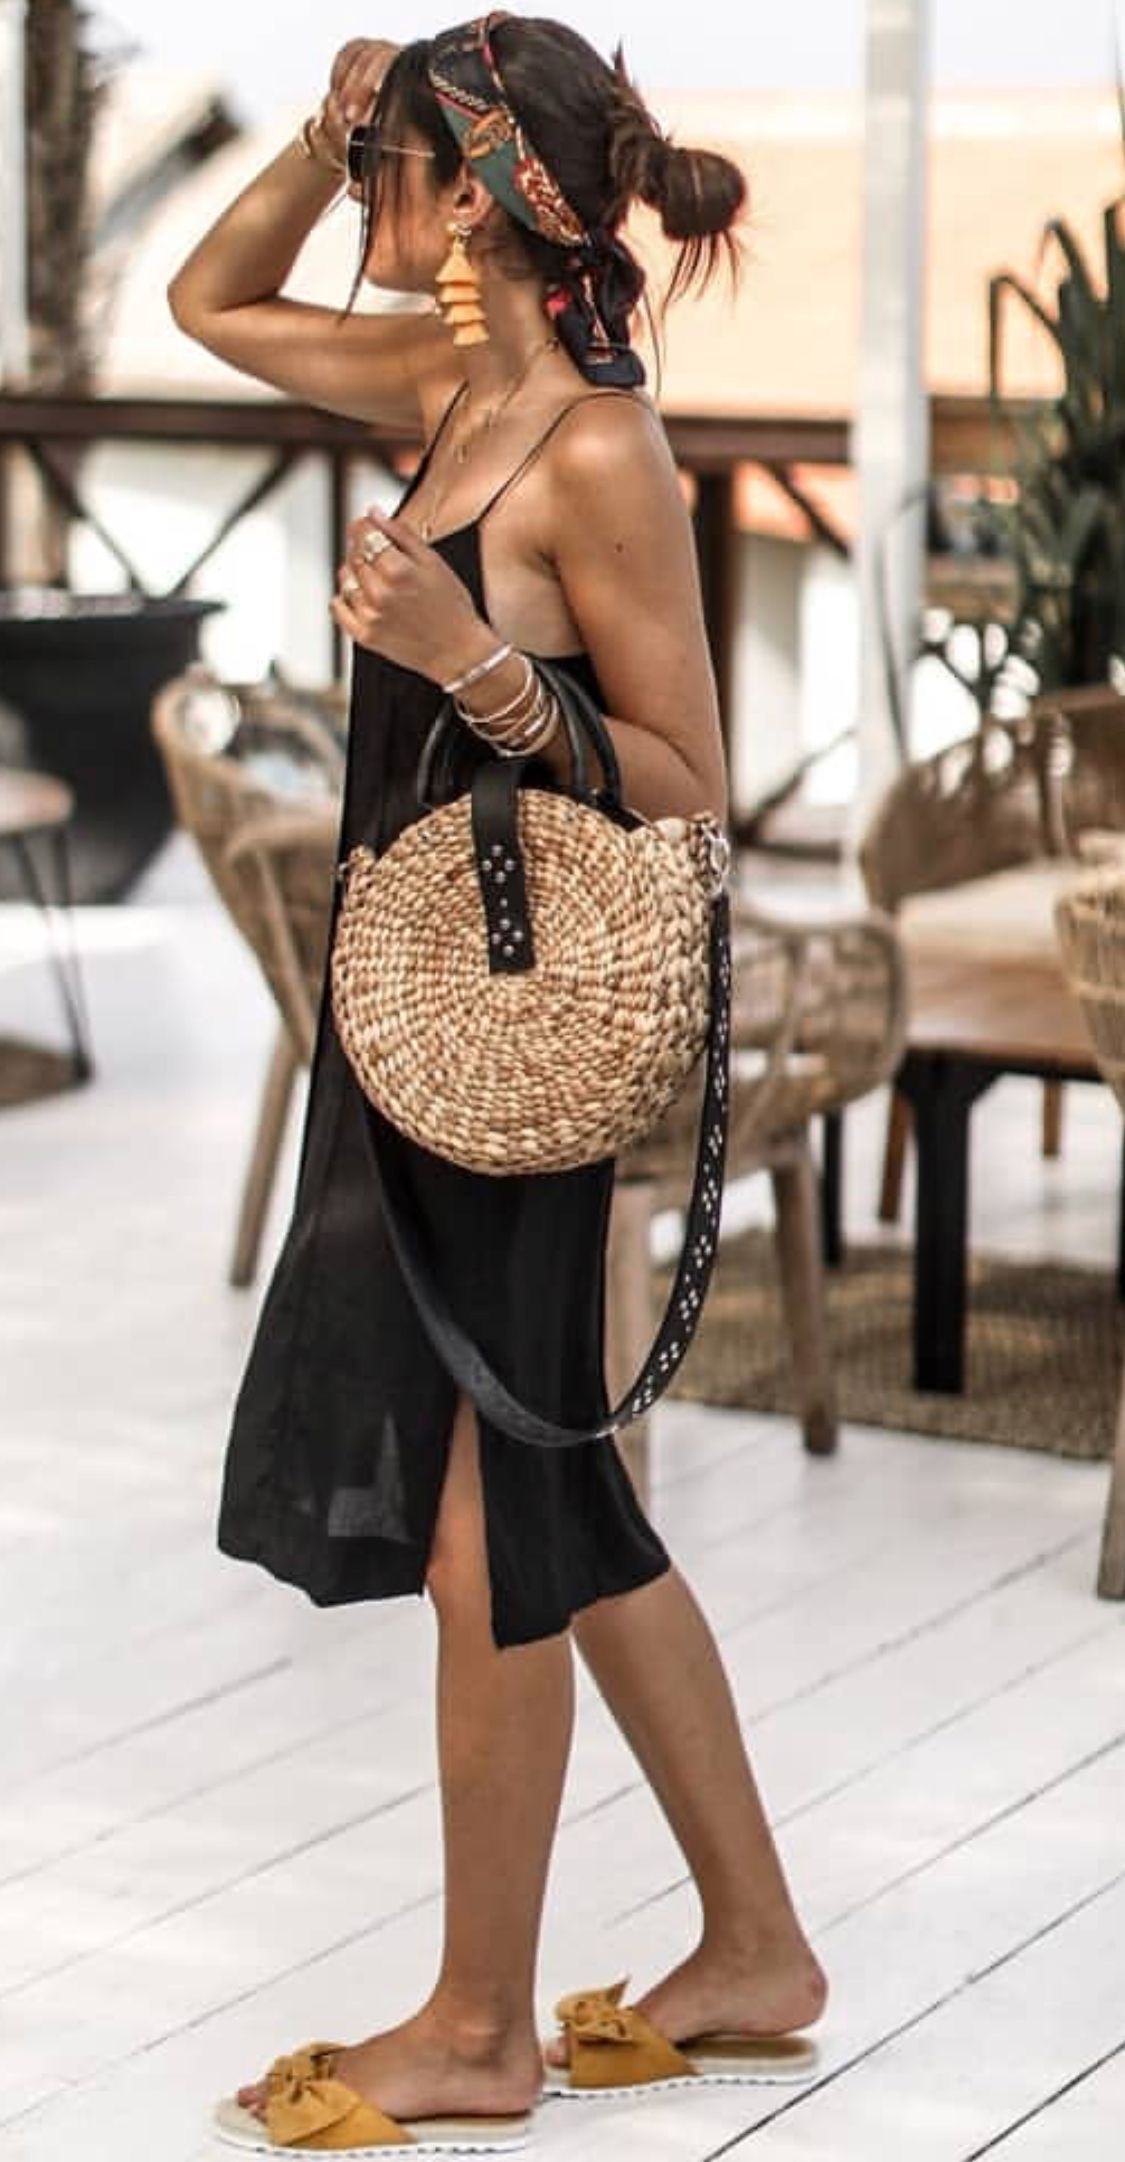 Casual vacation outfit with trendy straw handbag. #vacationlooks